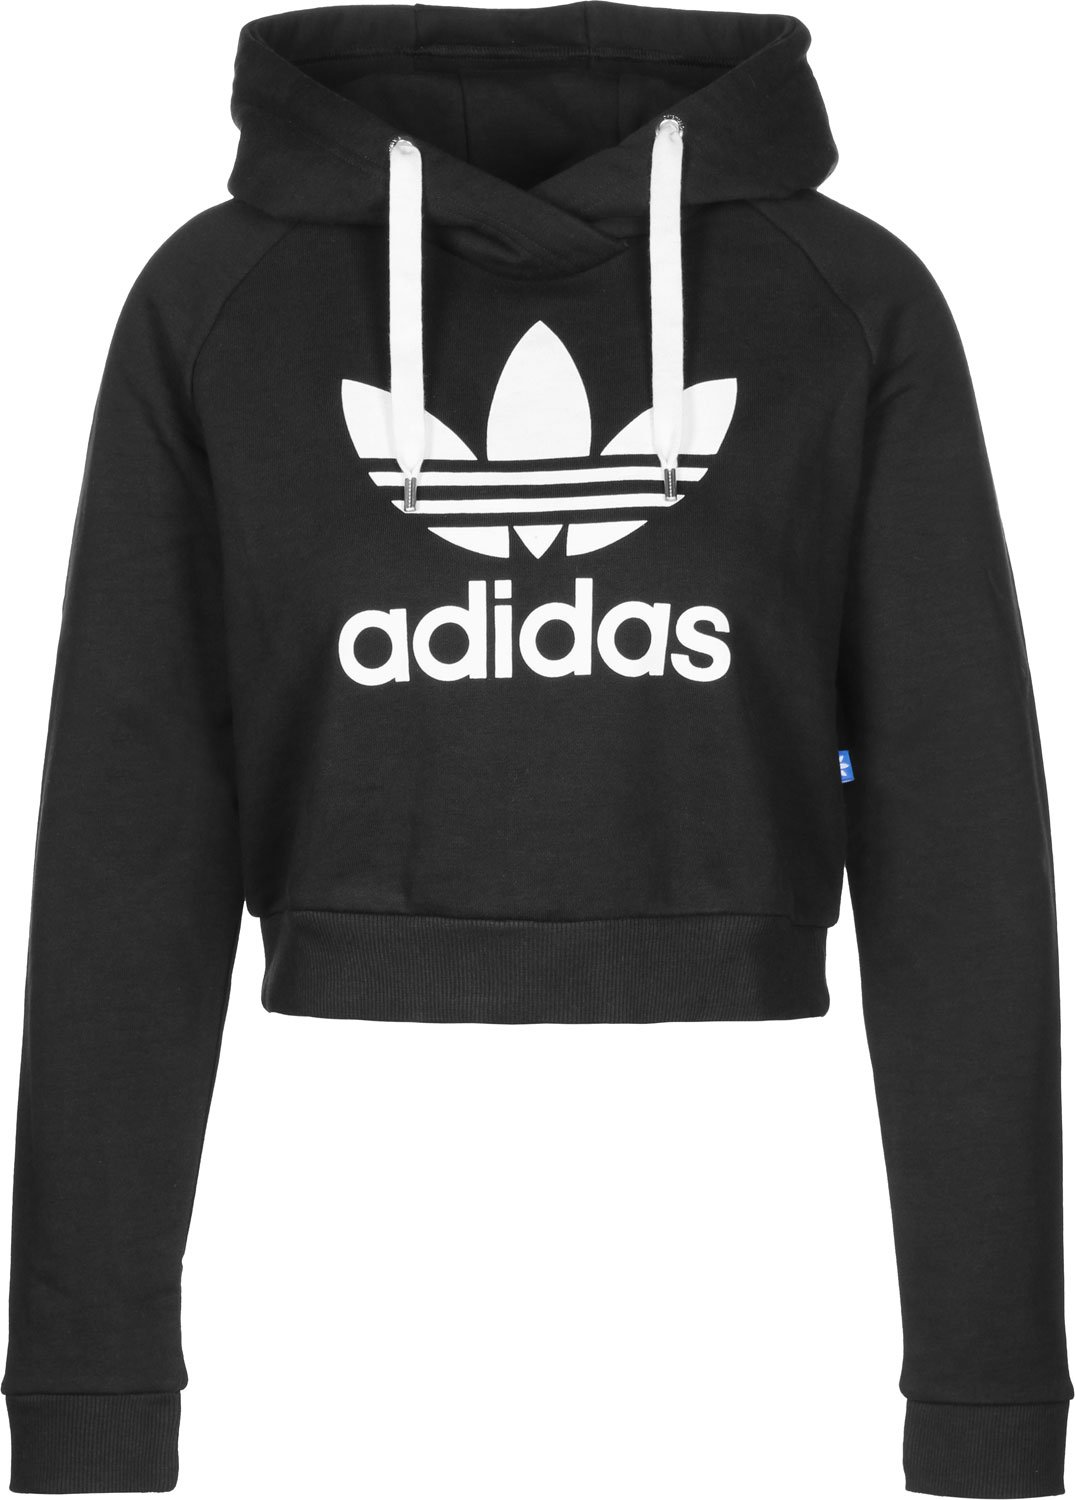 adidas trf crop sweat-shirt femme femme trf crop